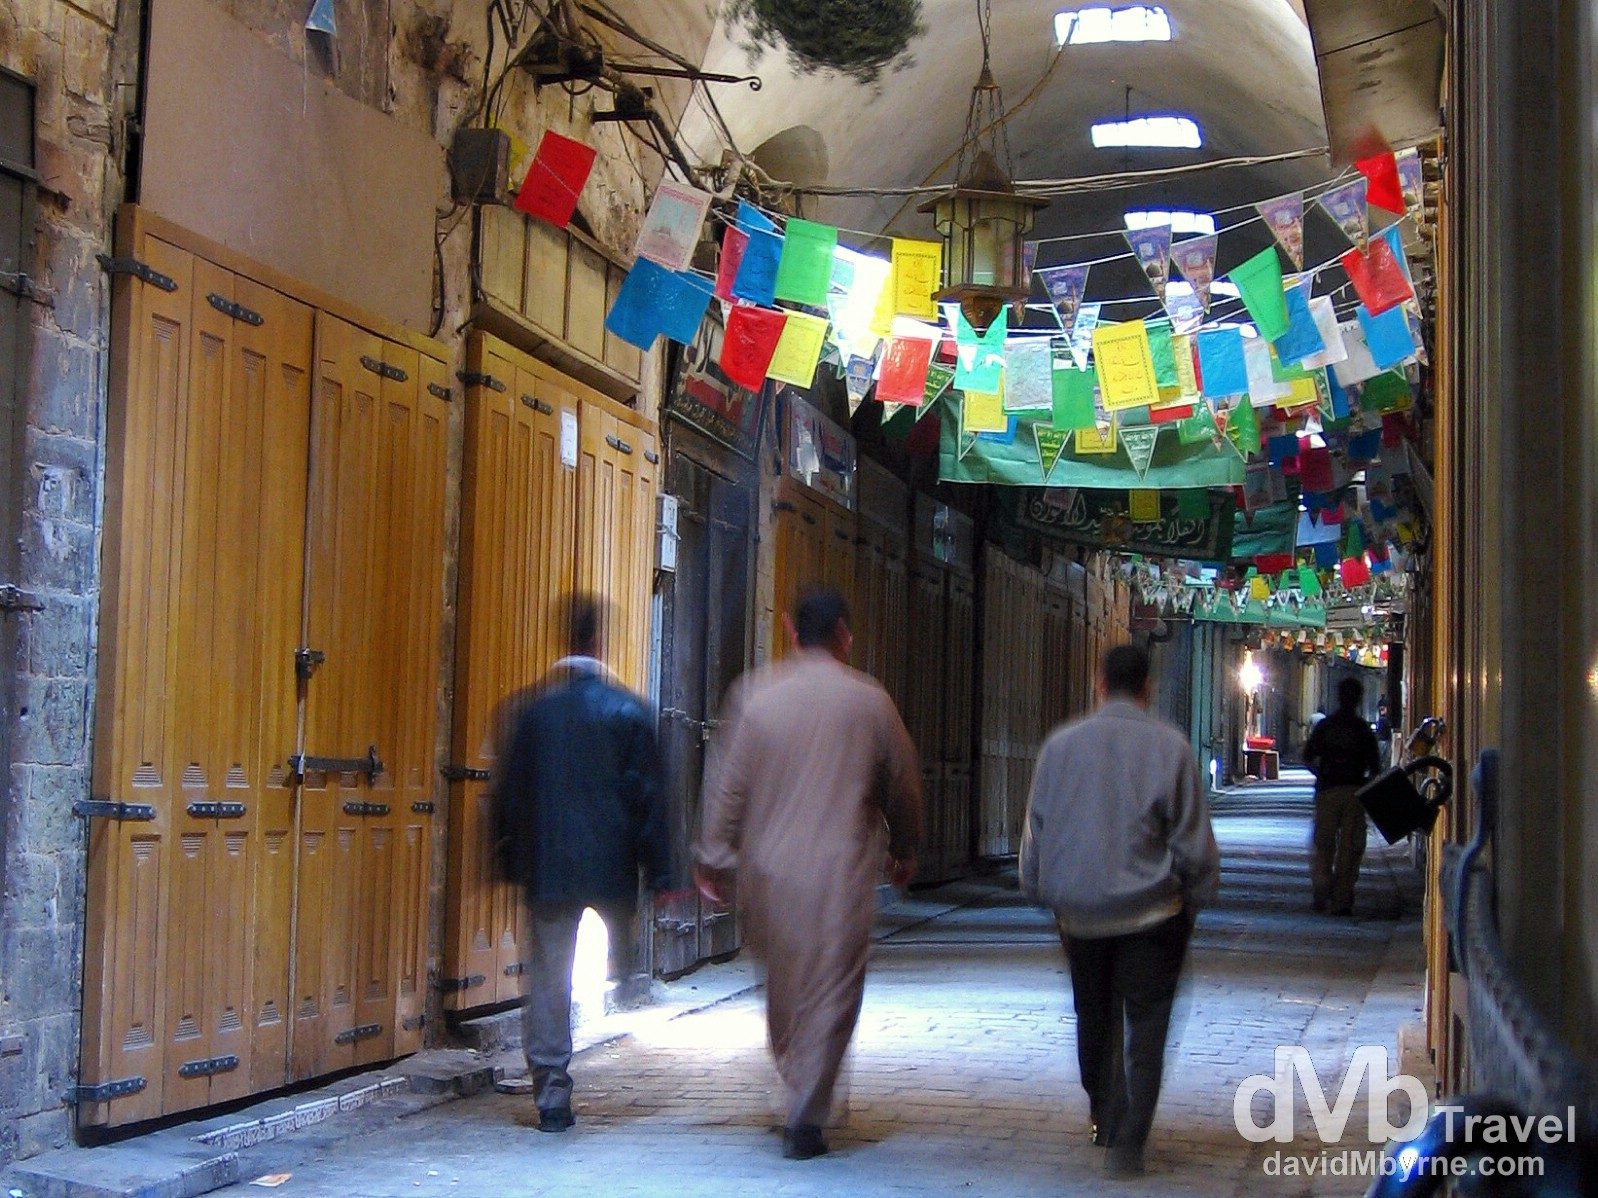 Walking in an empty section of al-Madina souq in Aleppo, Syria. May 9, 2008.